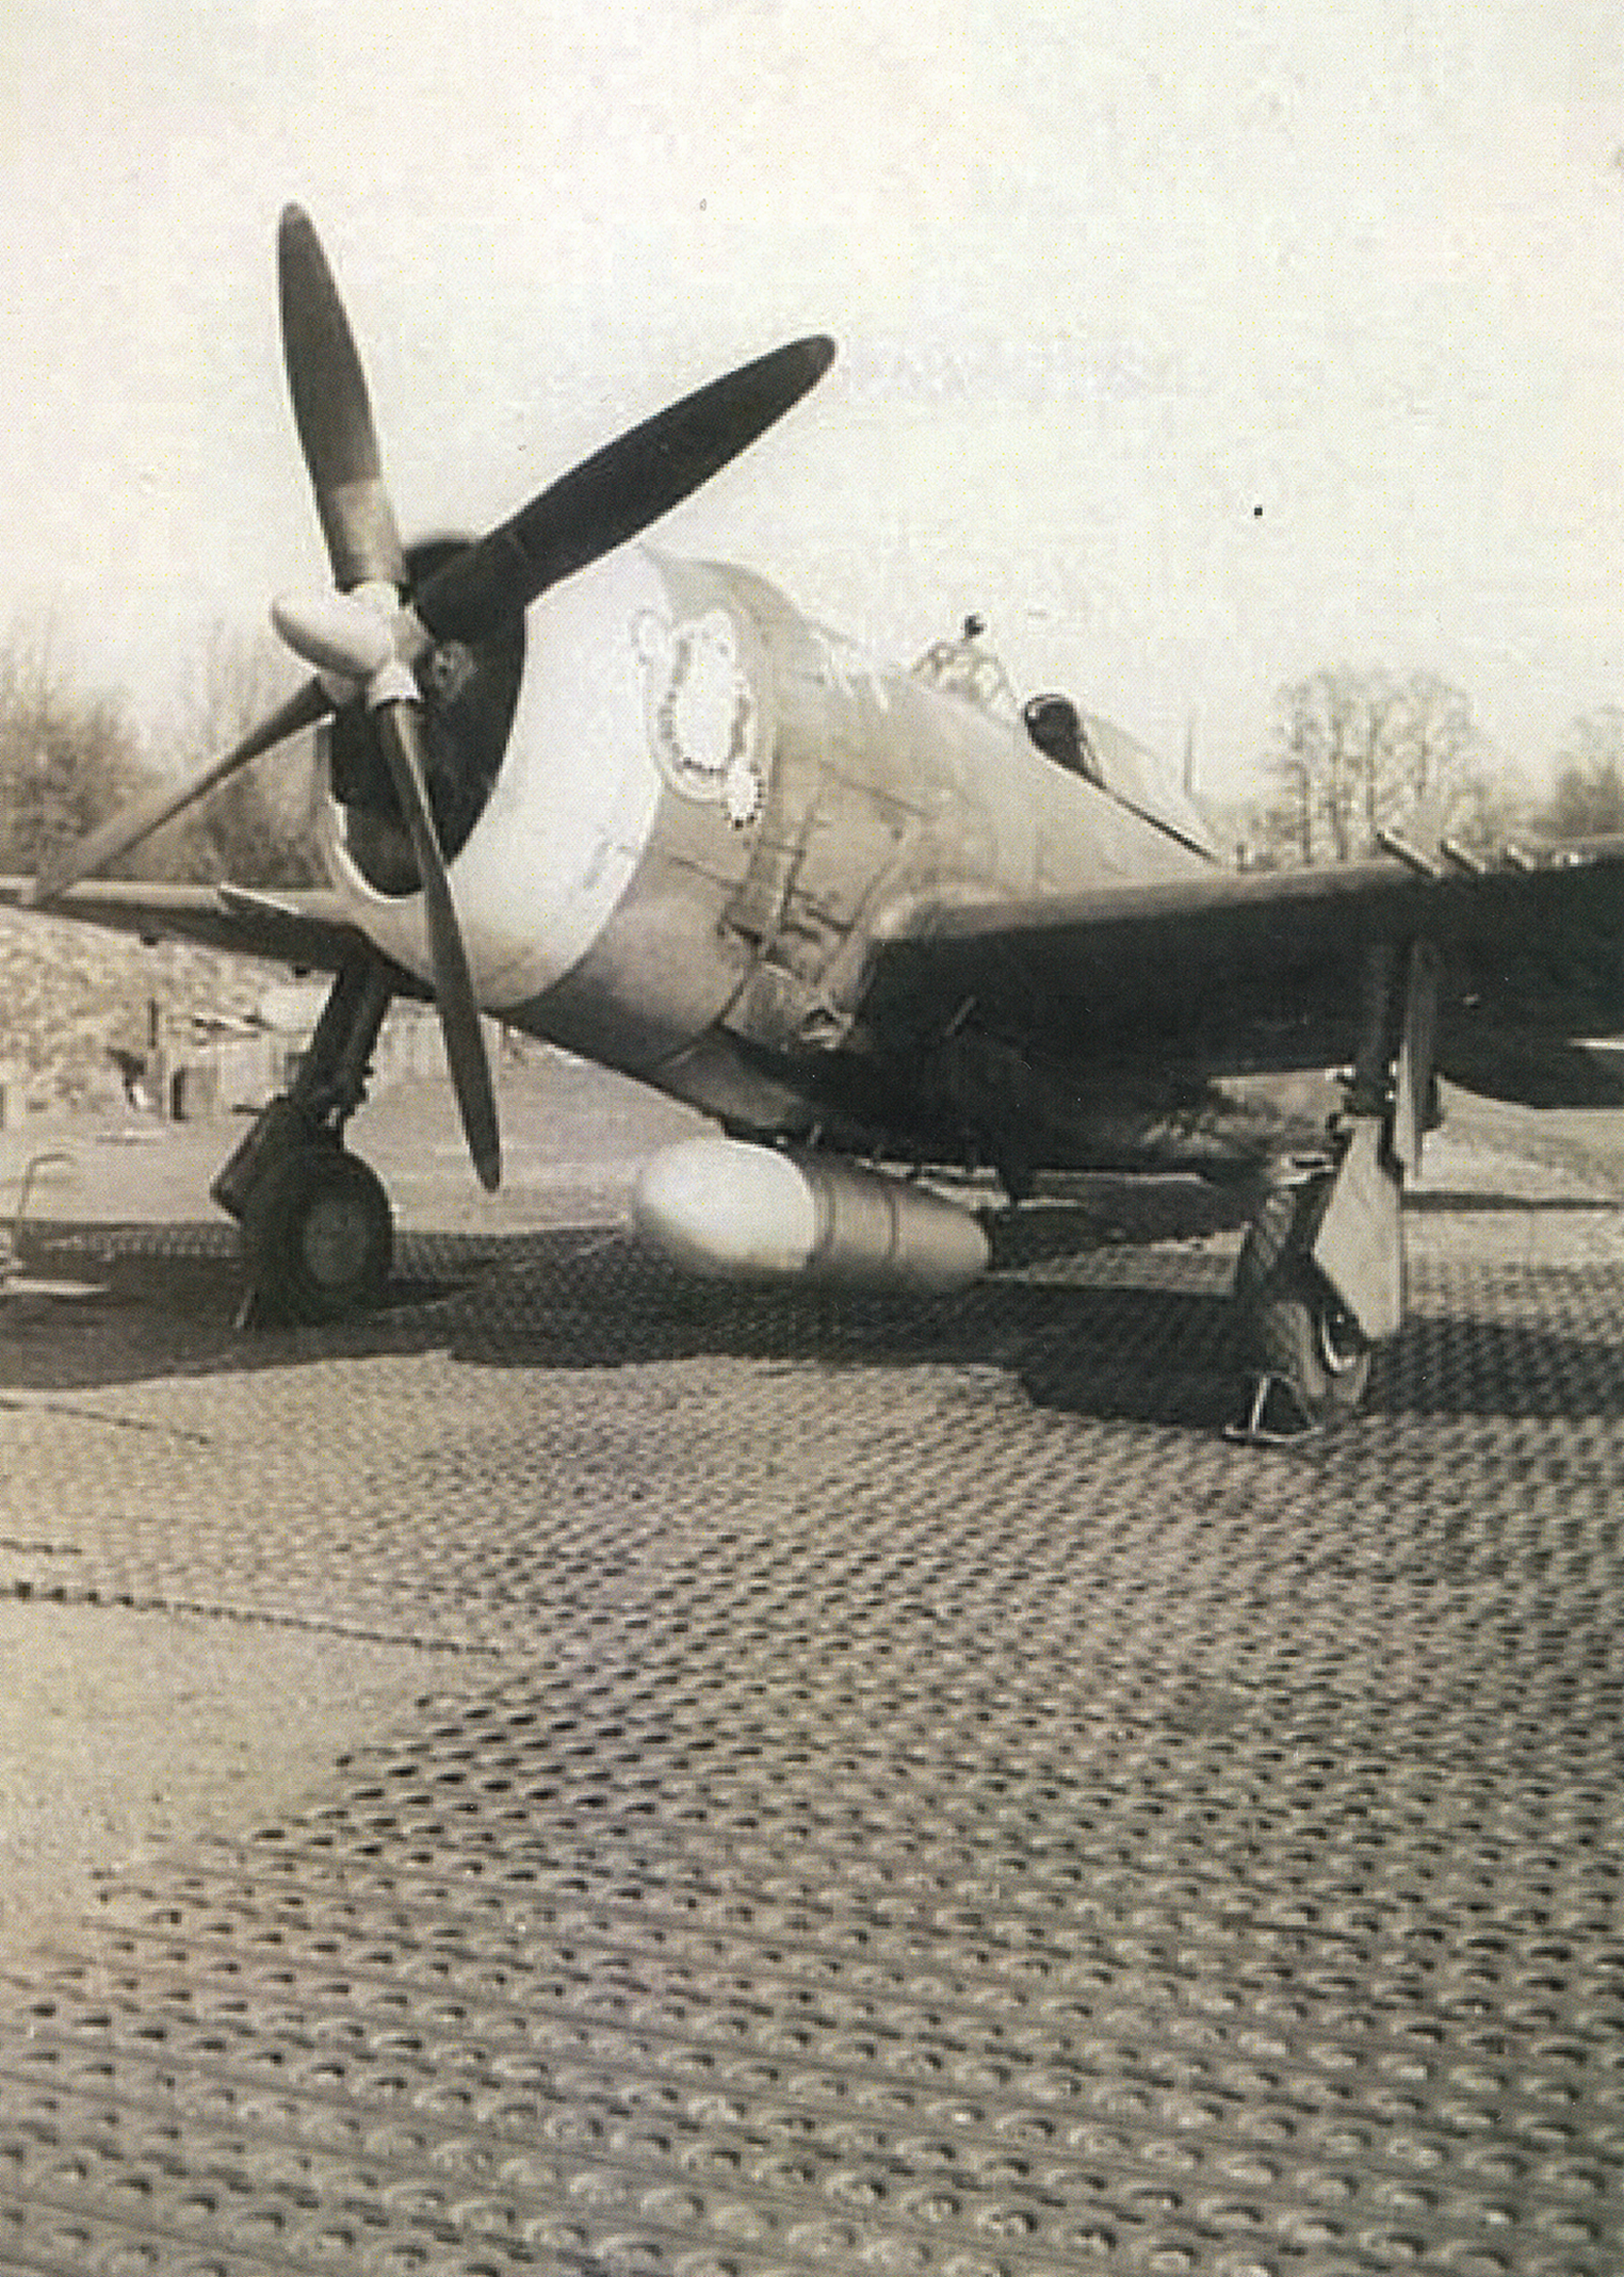 P-47 Thunderbolt fighter © AAM – UPL 18680